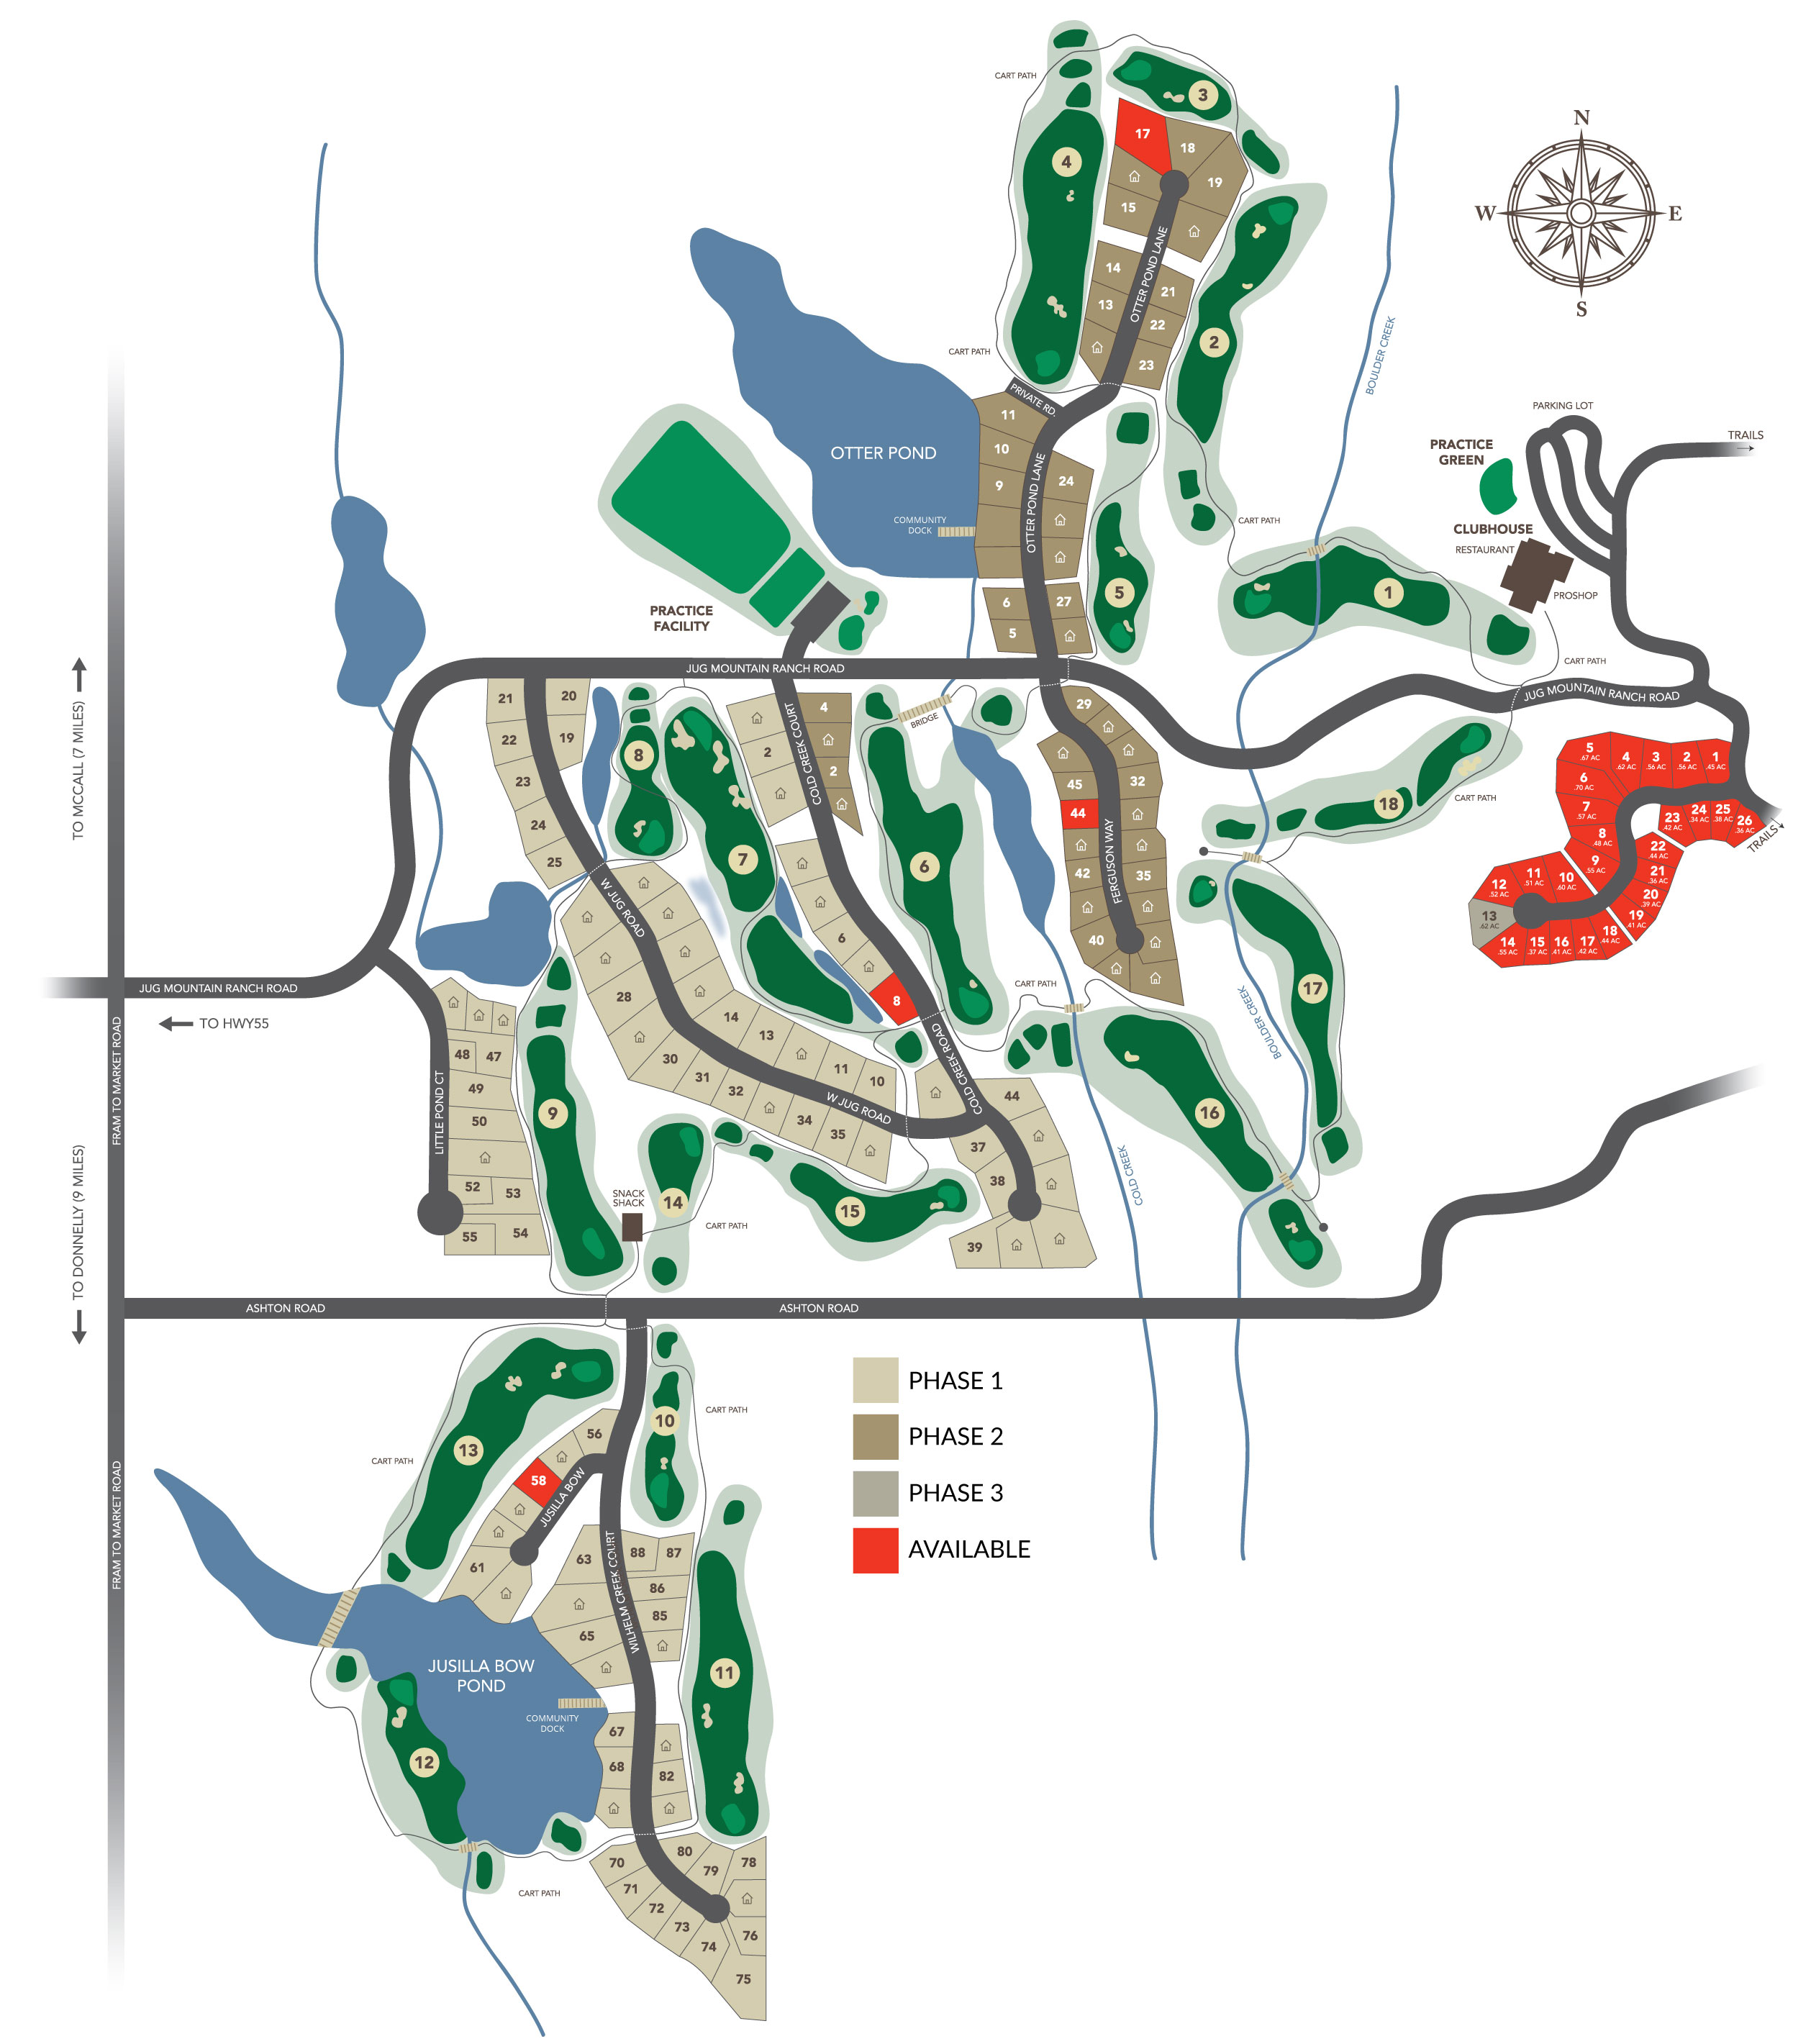 ABOUT THE RANCH | Jug Mountain Ranch on cowiche canyon map, snow california map, snow united states map, snow mountain resort map, cross country ski park city map, big bend ranch state park map, contact us map,